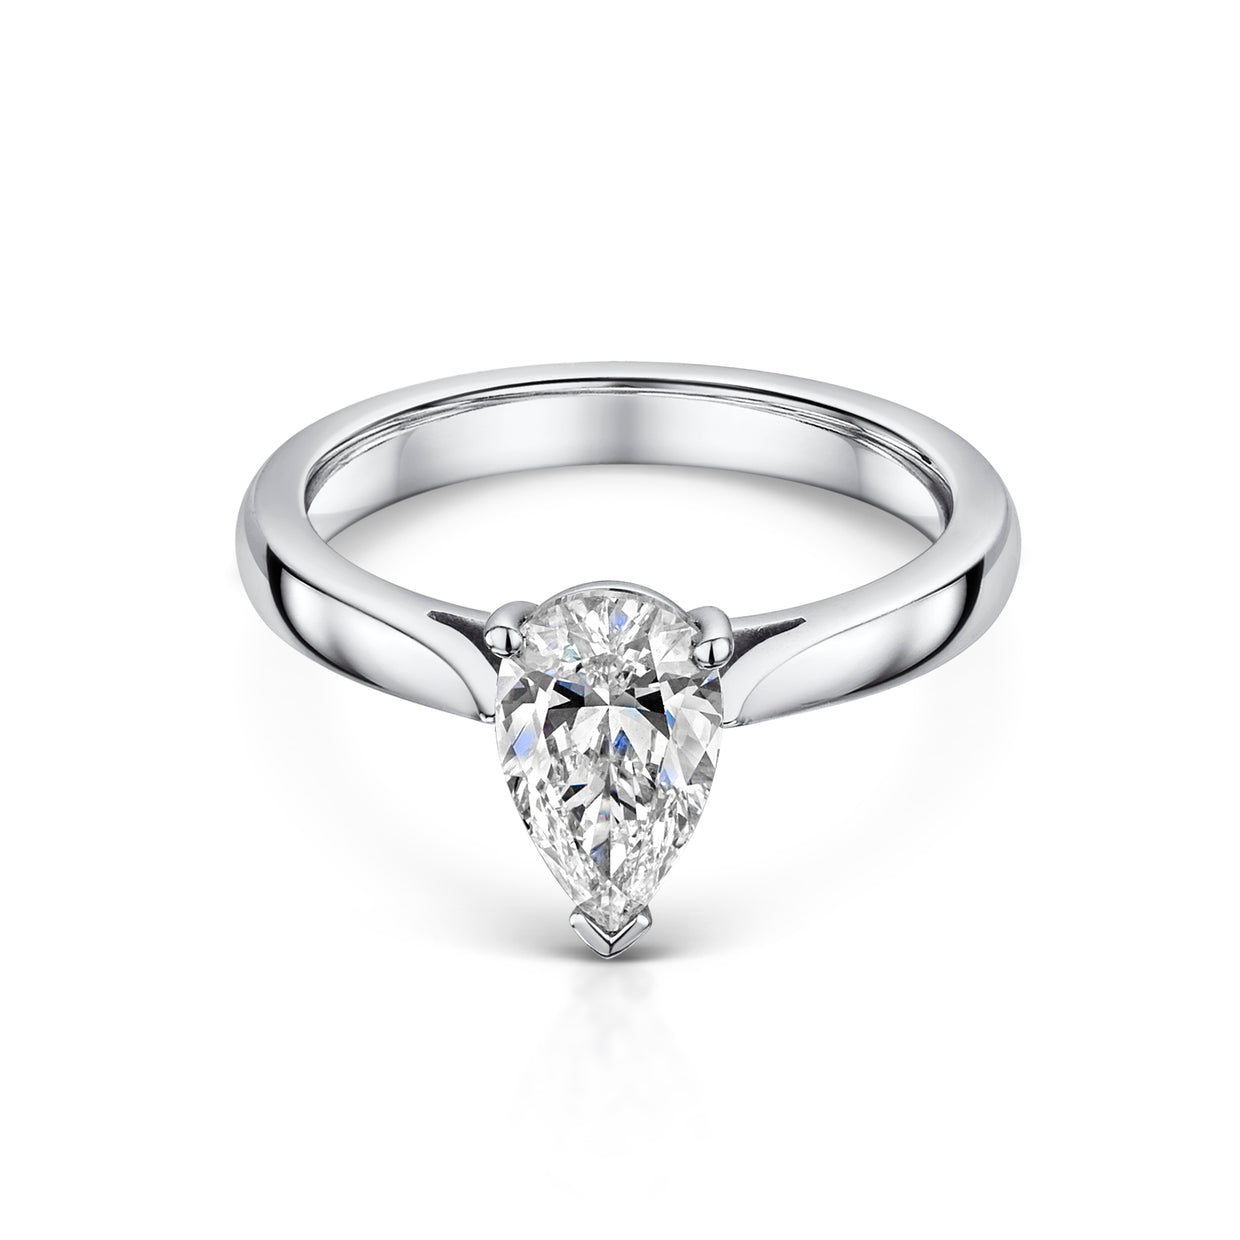 Pear Shaped Diamond Engagement Ring in Platinum-Hamilton & Inches